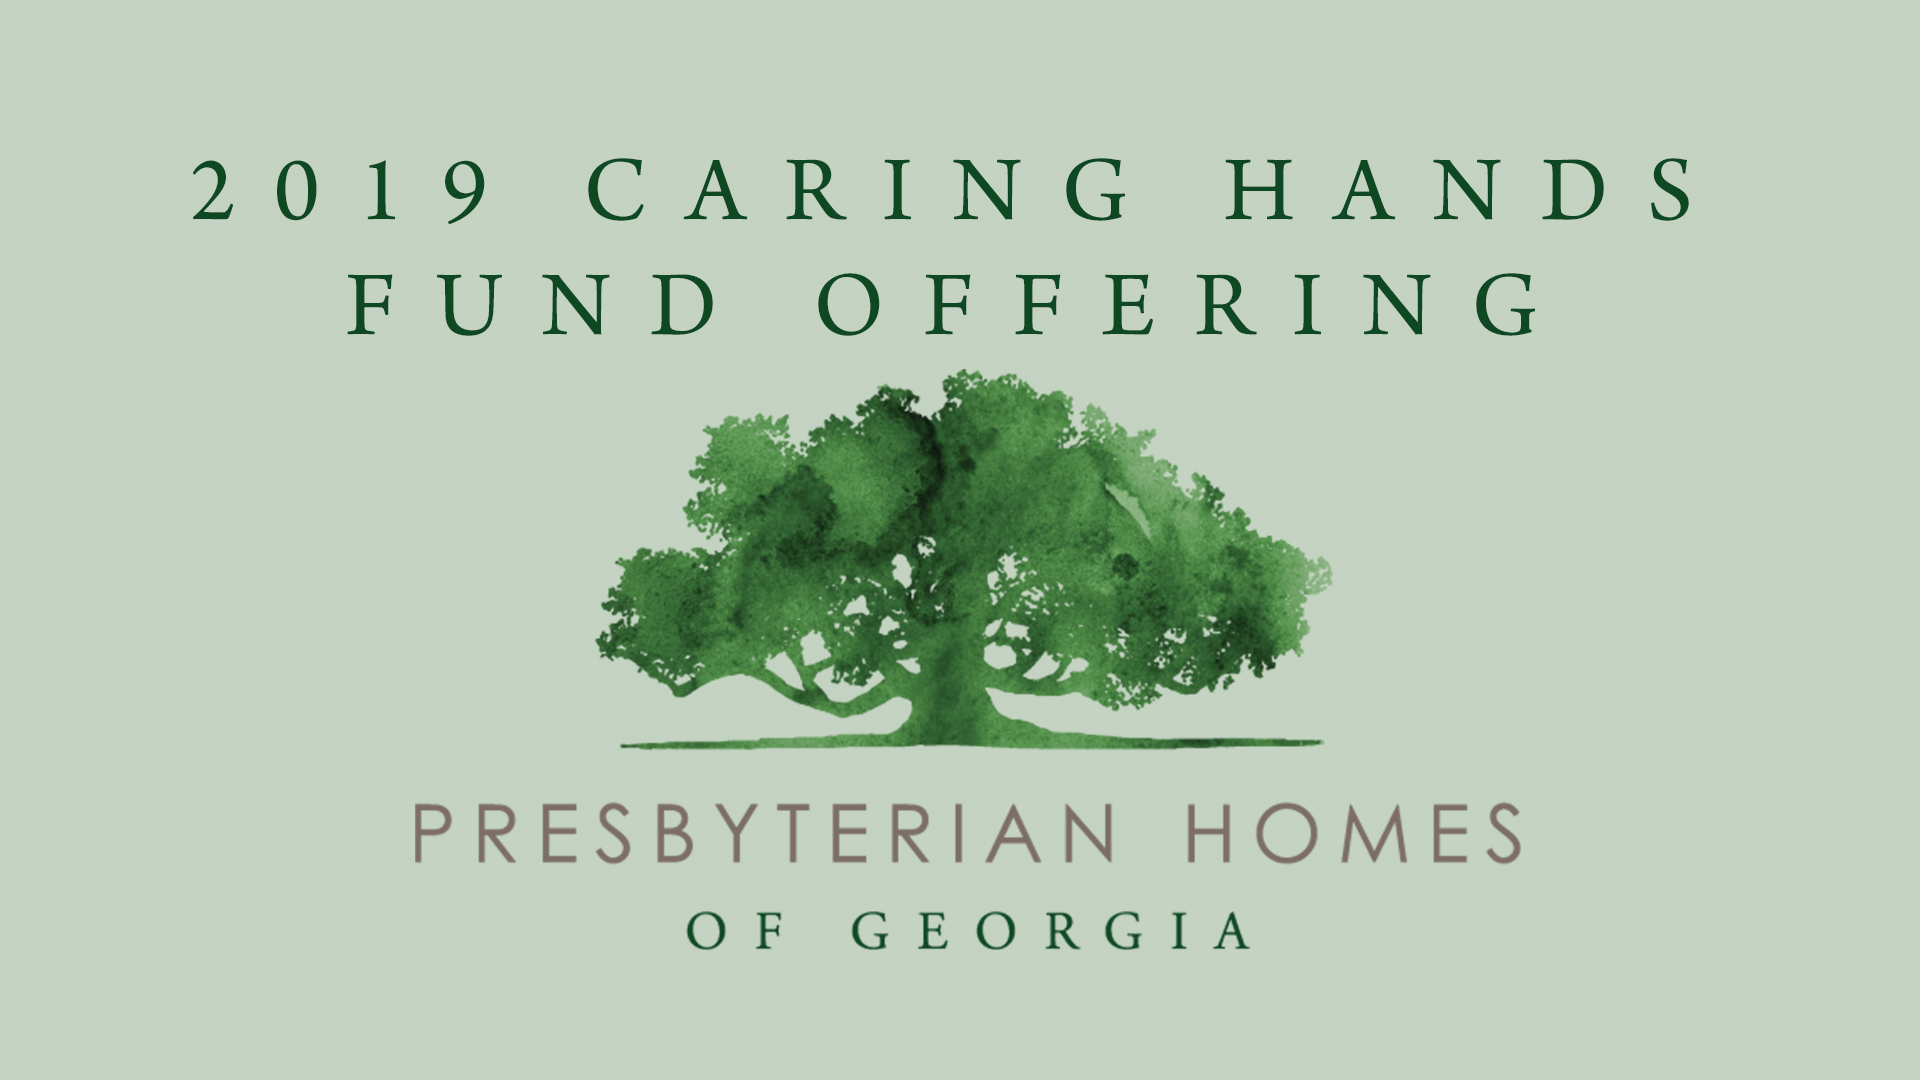 2019 Caring Hands Fund Offering.jpg